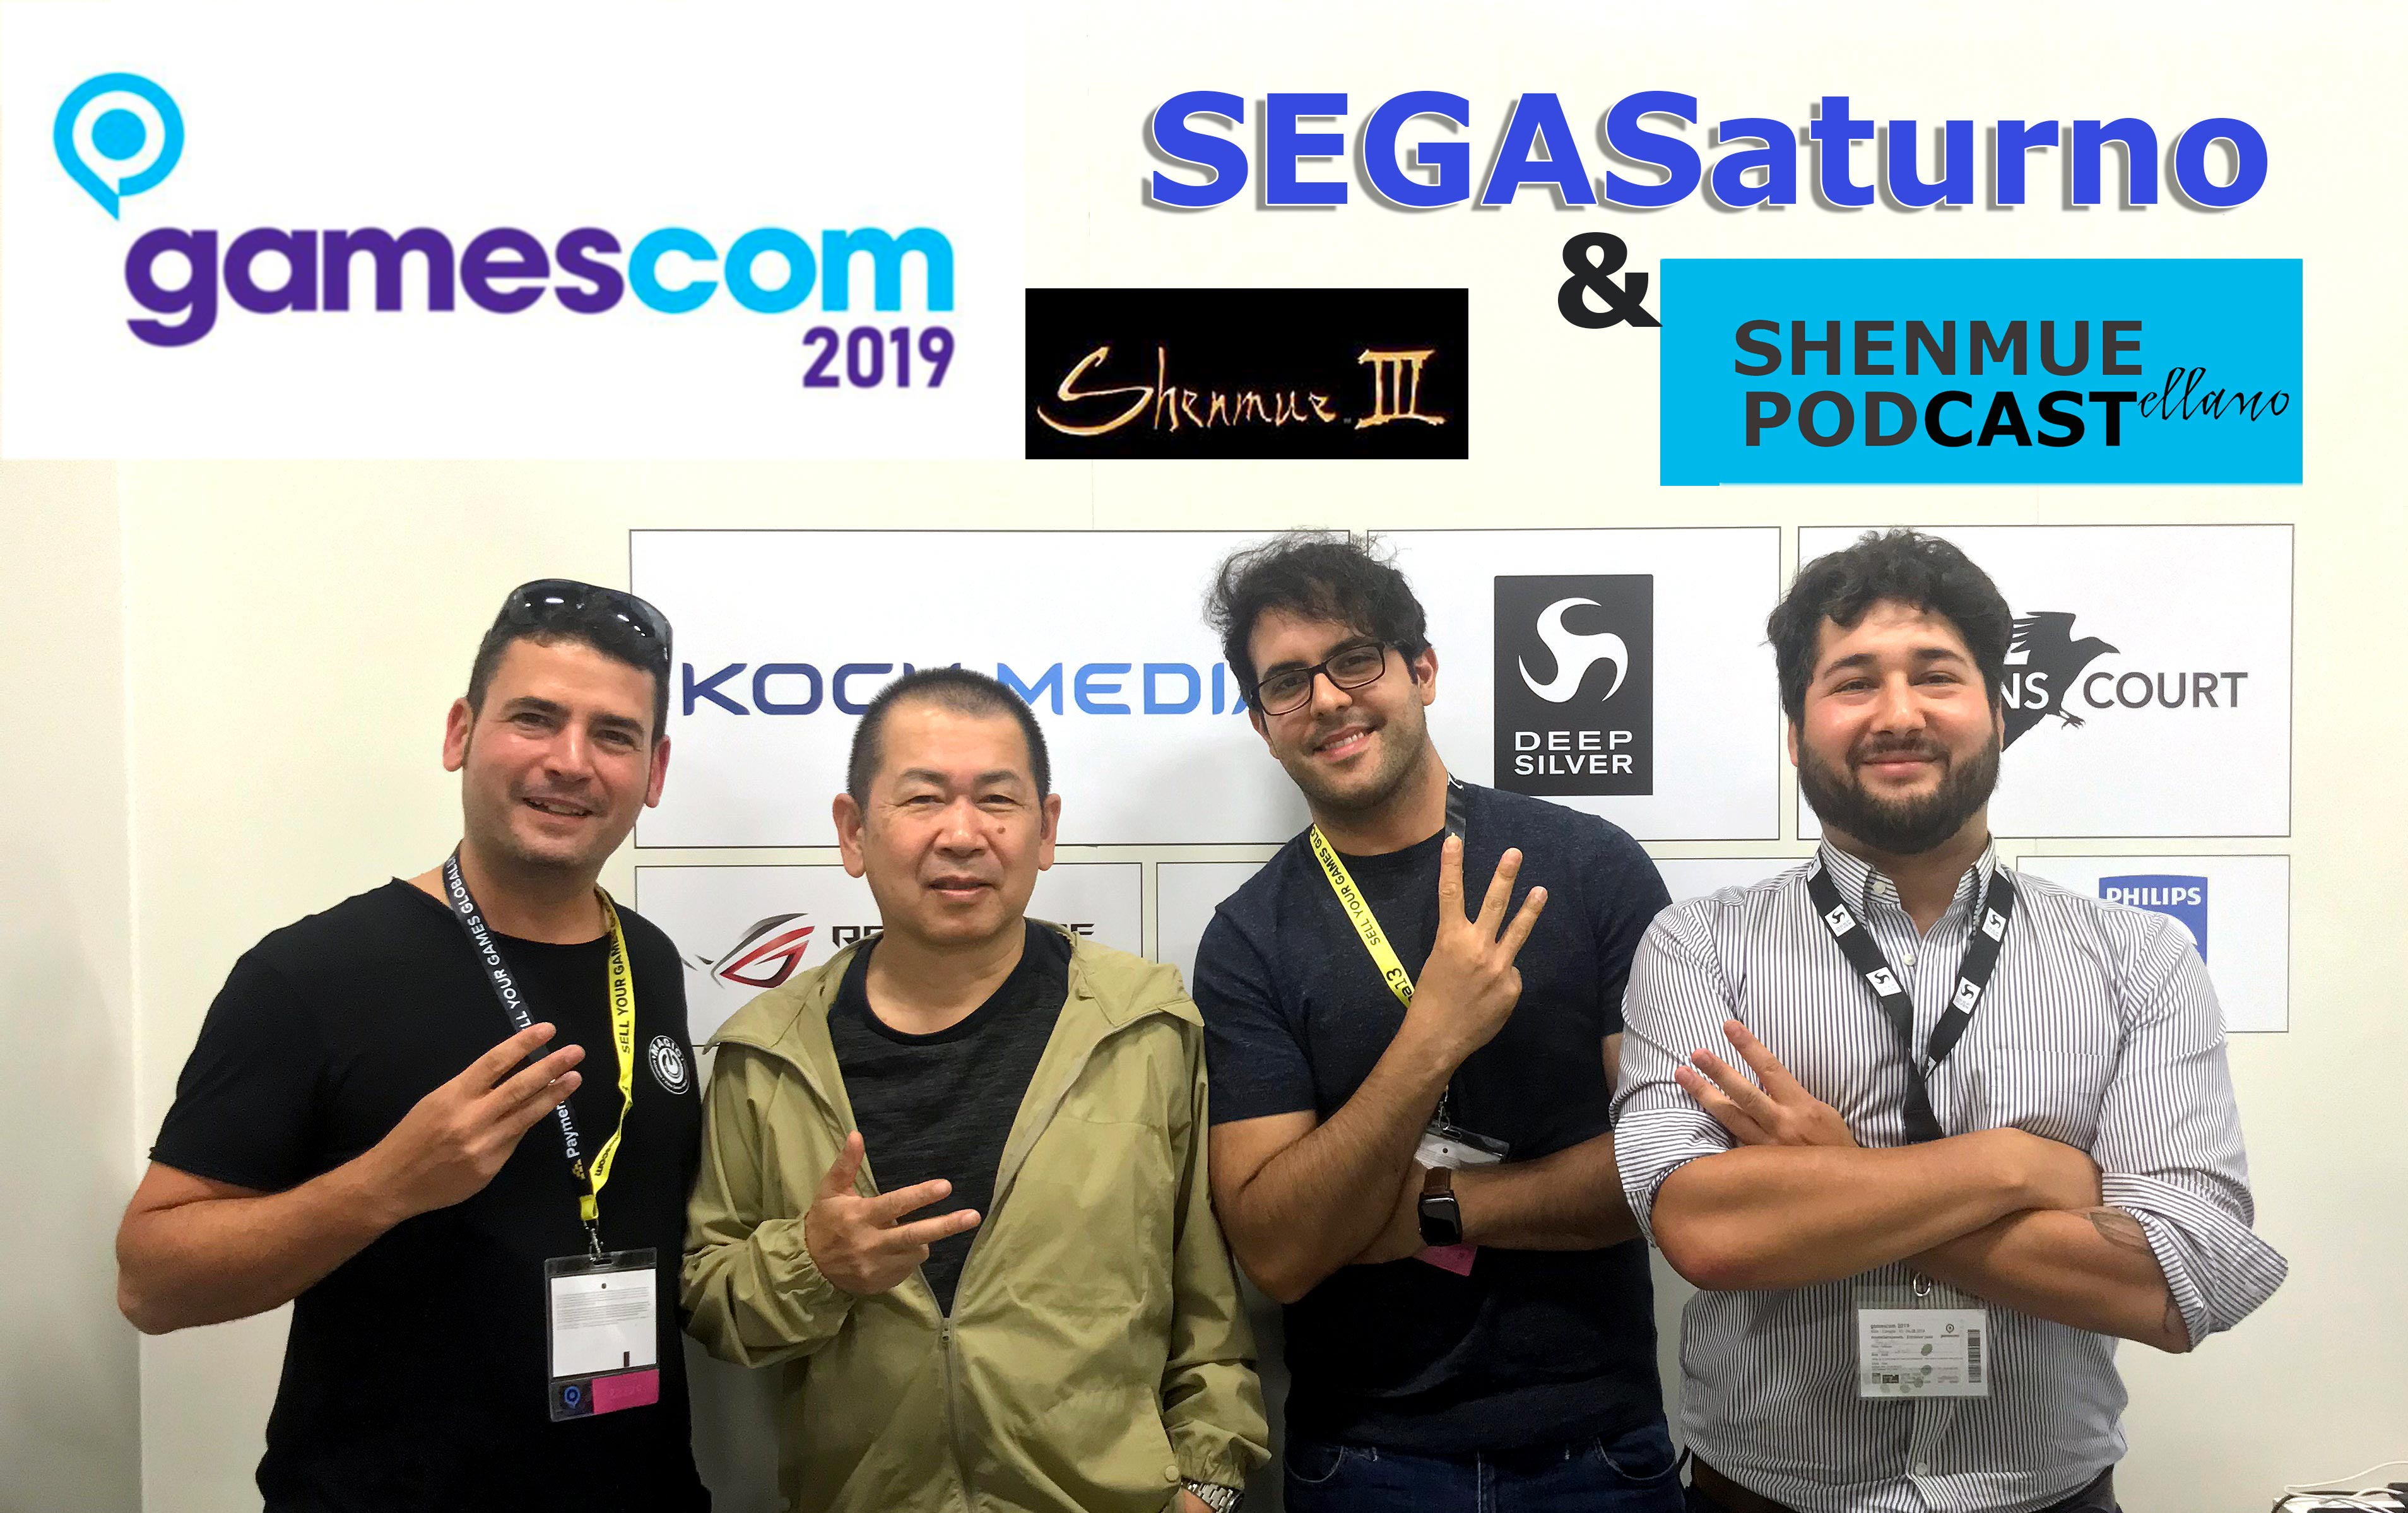 yu suzuki and kenji kojima alfonso martinez gerard ames deep silver booth 2019 entrevista interview